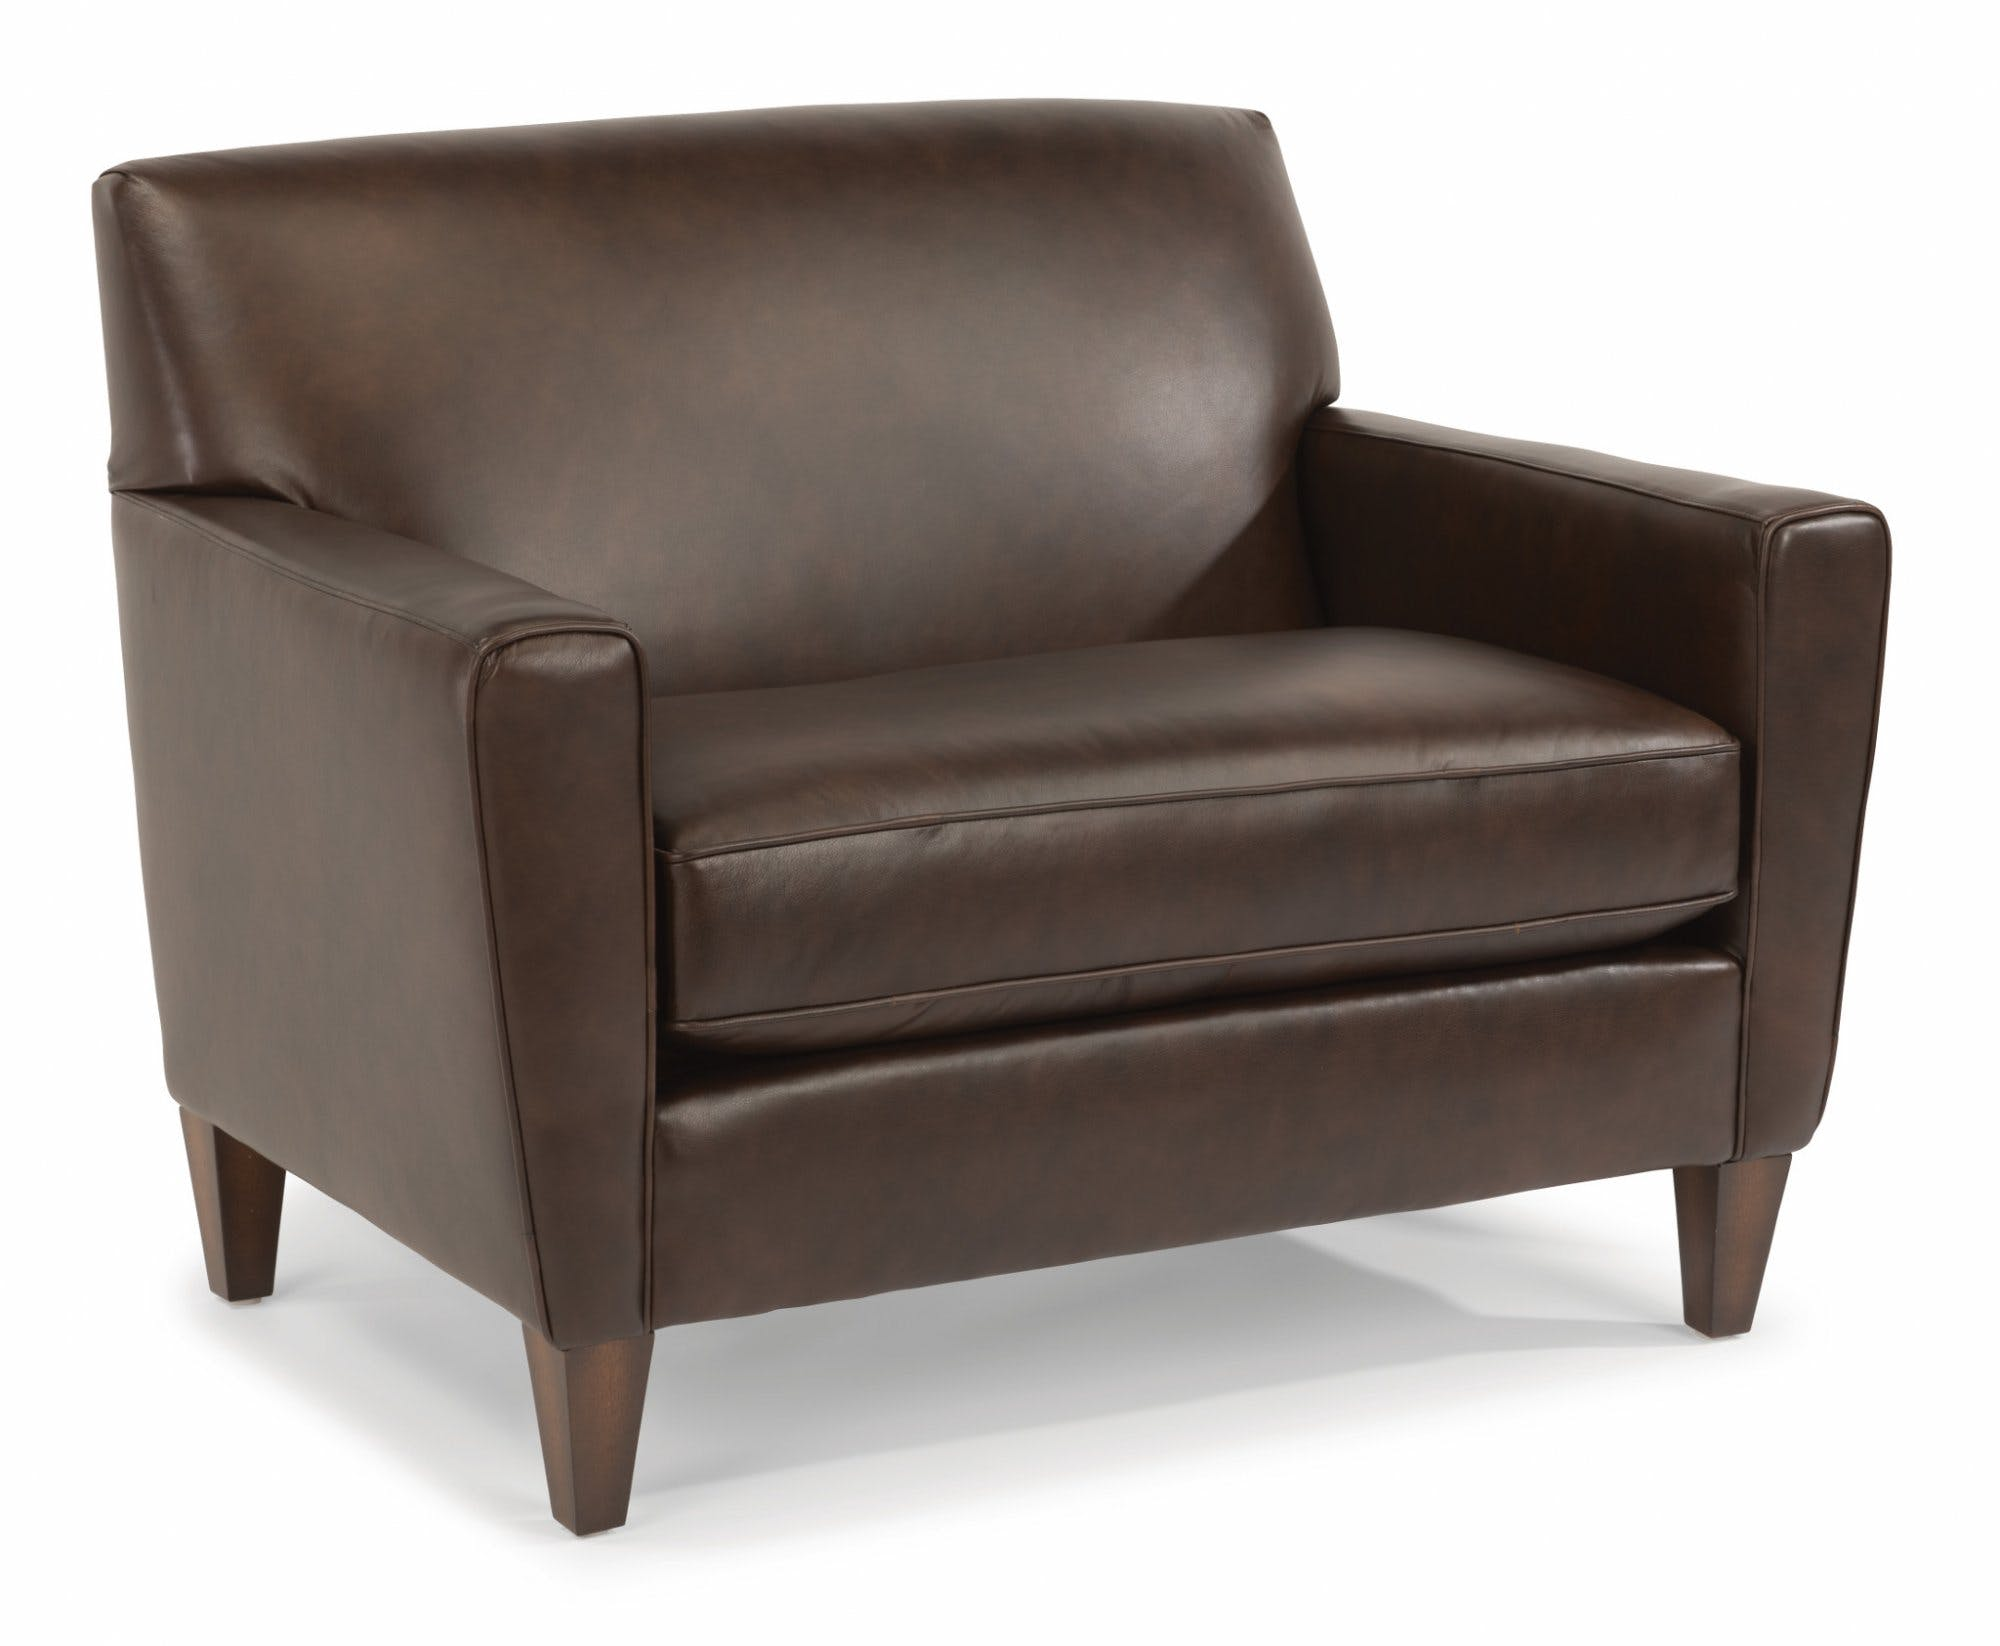 Flexsteel Living Room Leather Chair And A Half 3966-101 - Russell's